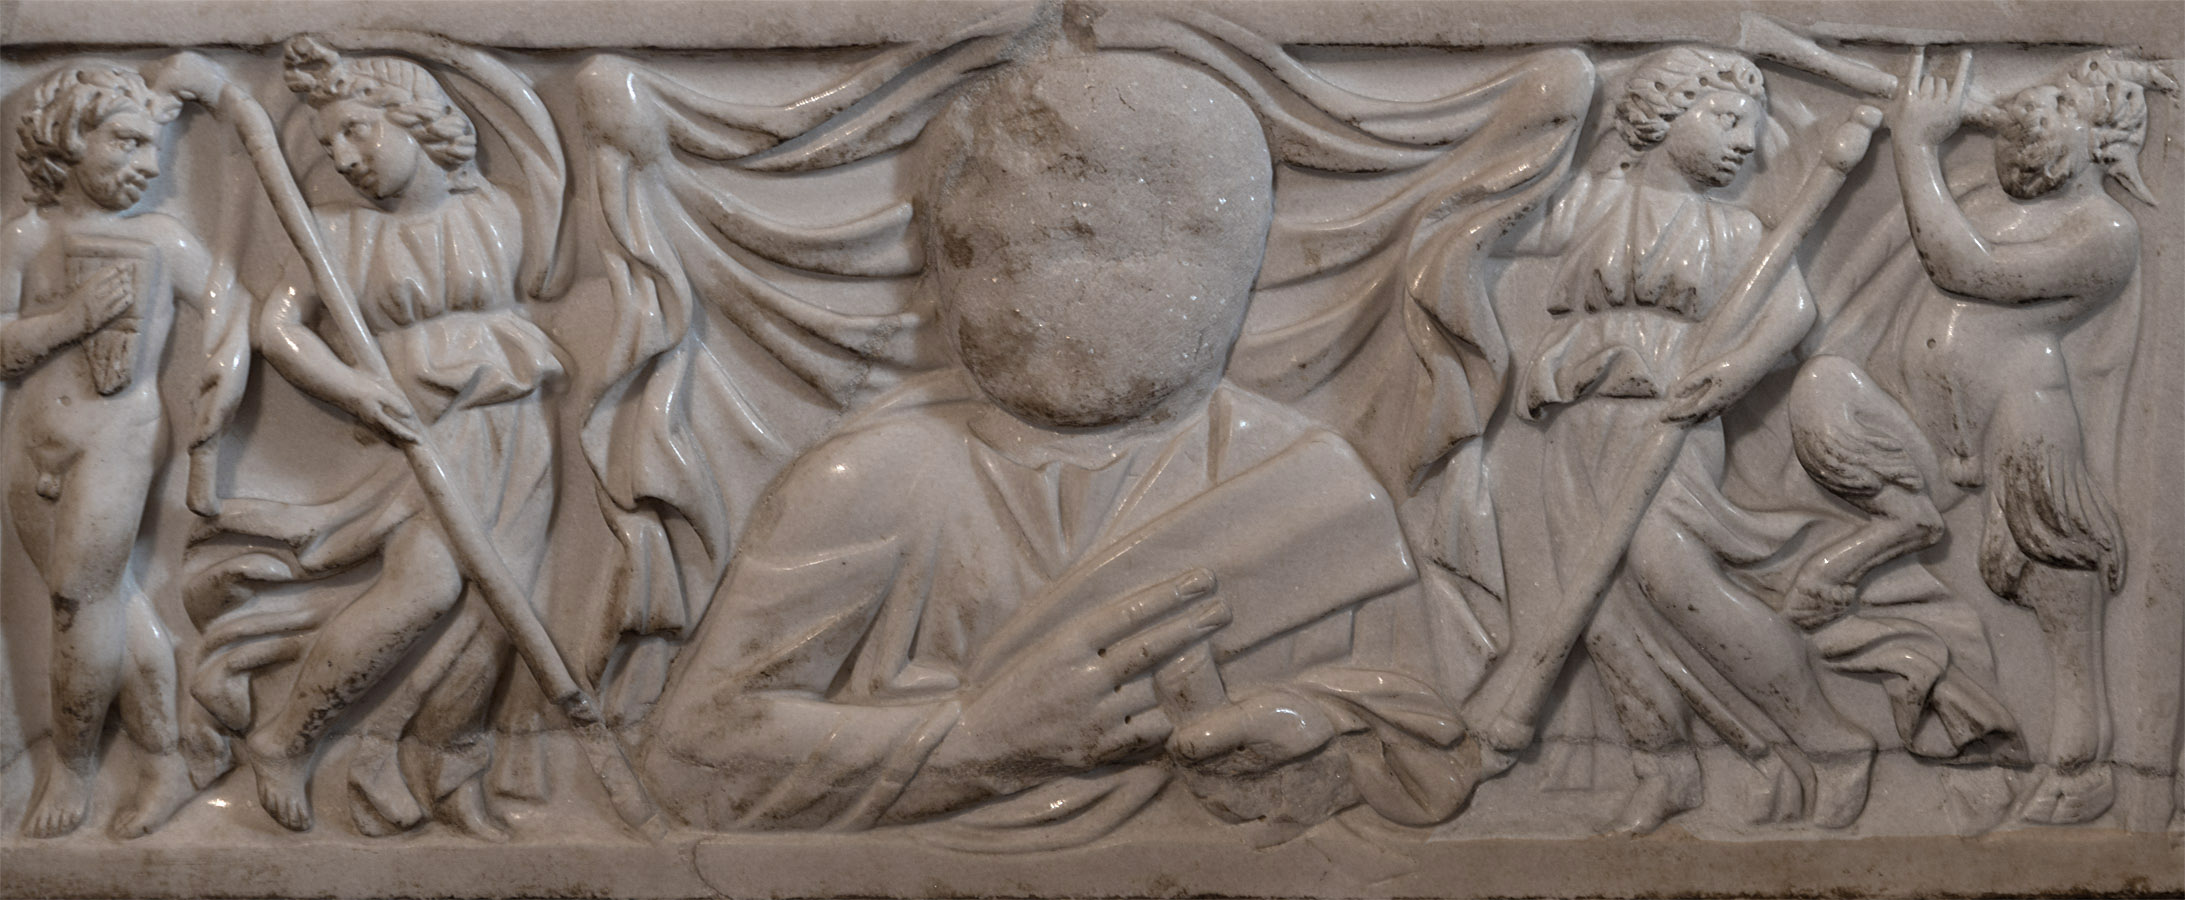 A blank workpiece for a portrait of the deceased among dionysiac companions (a close-up of a lid of sarcophagus with a myth of Dionysus and Ariadne). Marble. Ca. 235 CE. Inv. No. Ma 1346. Paris, Louvre Museum